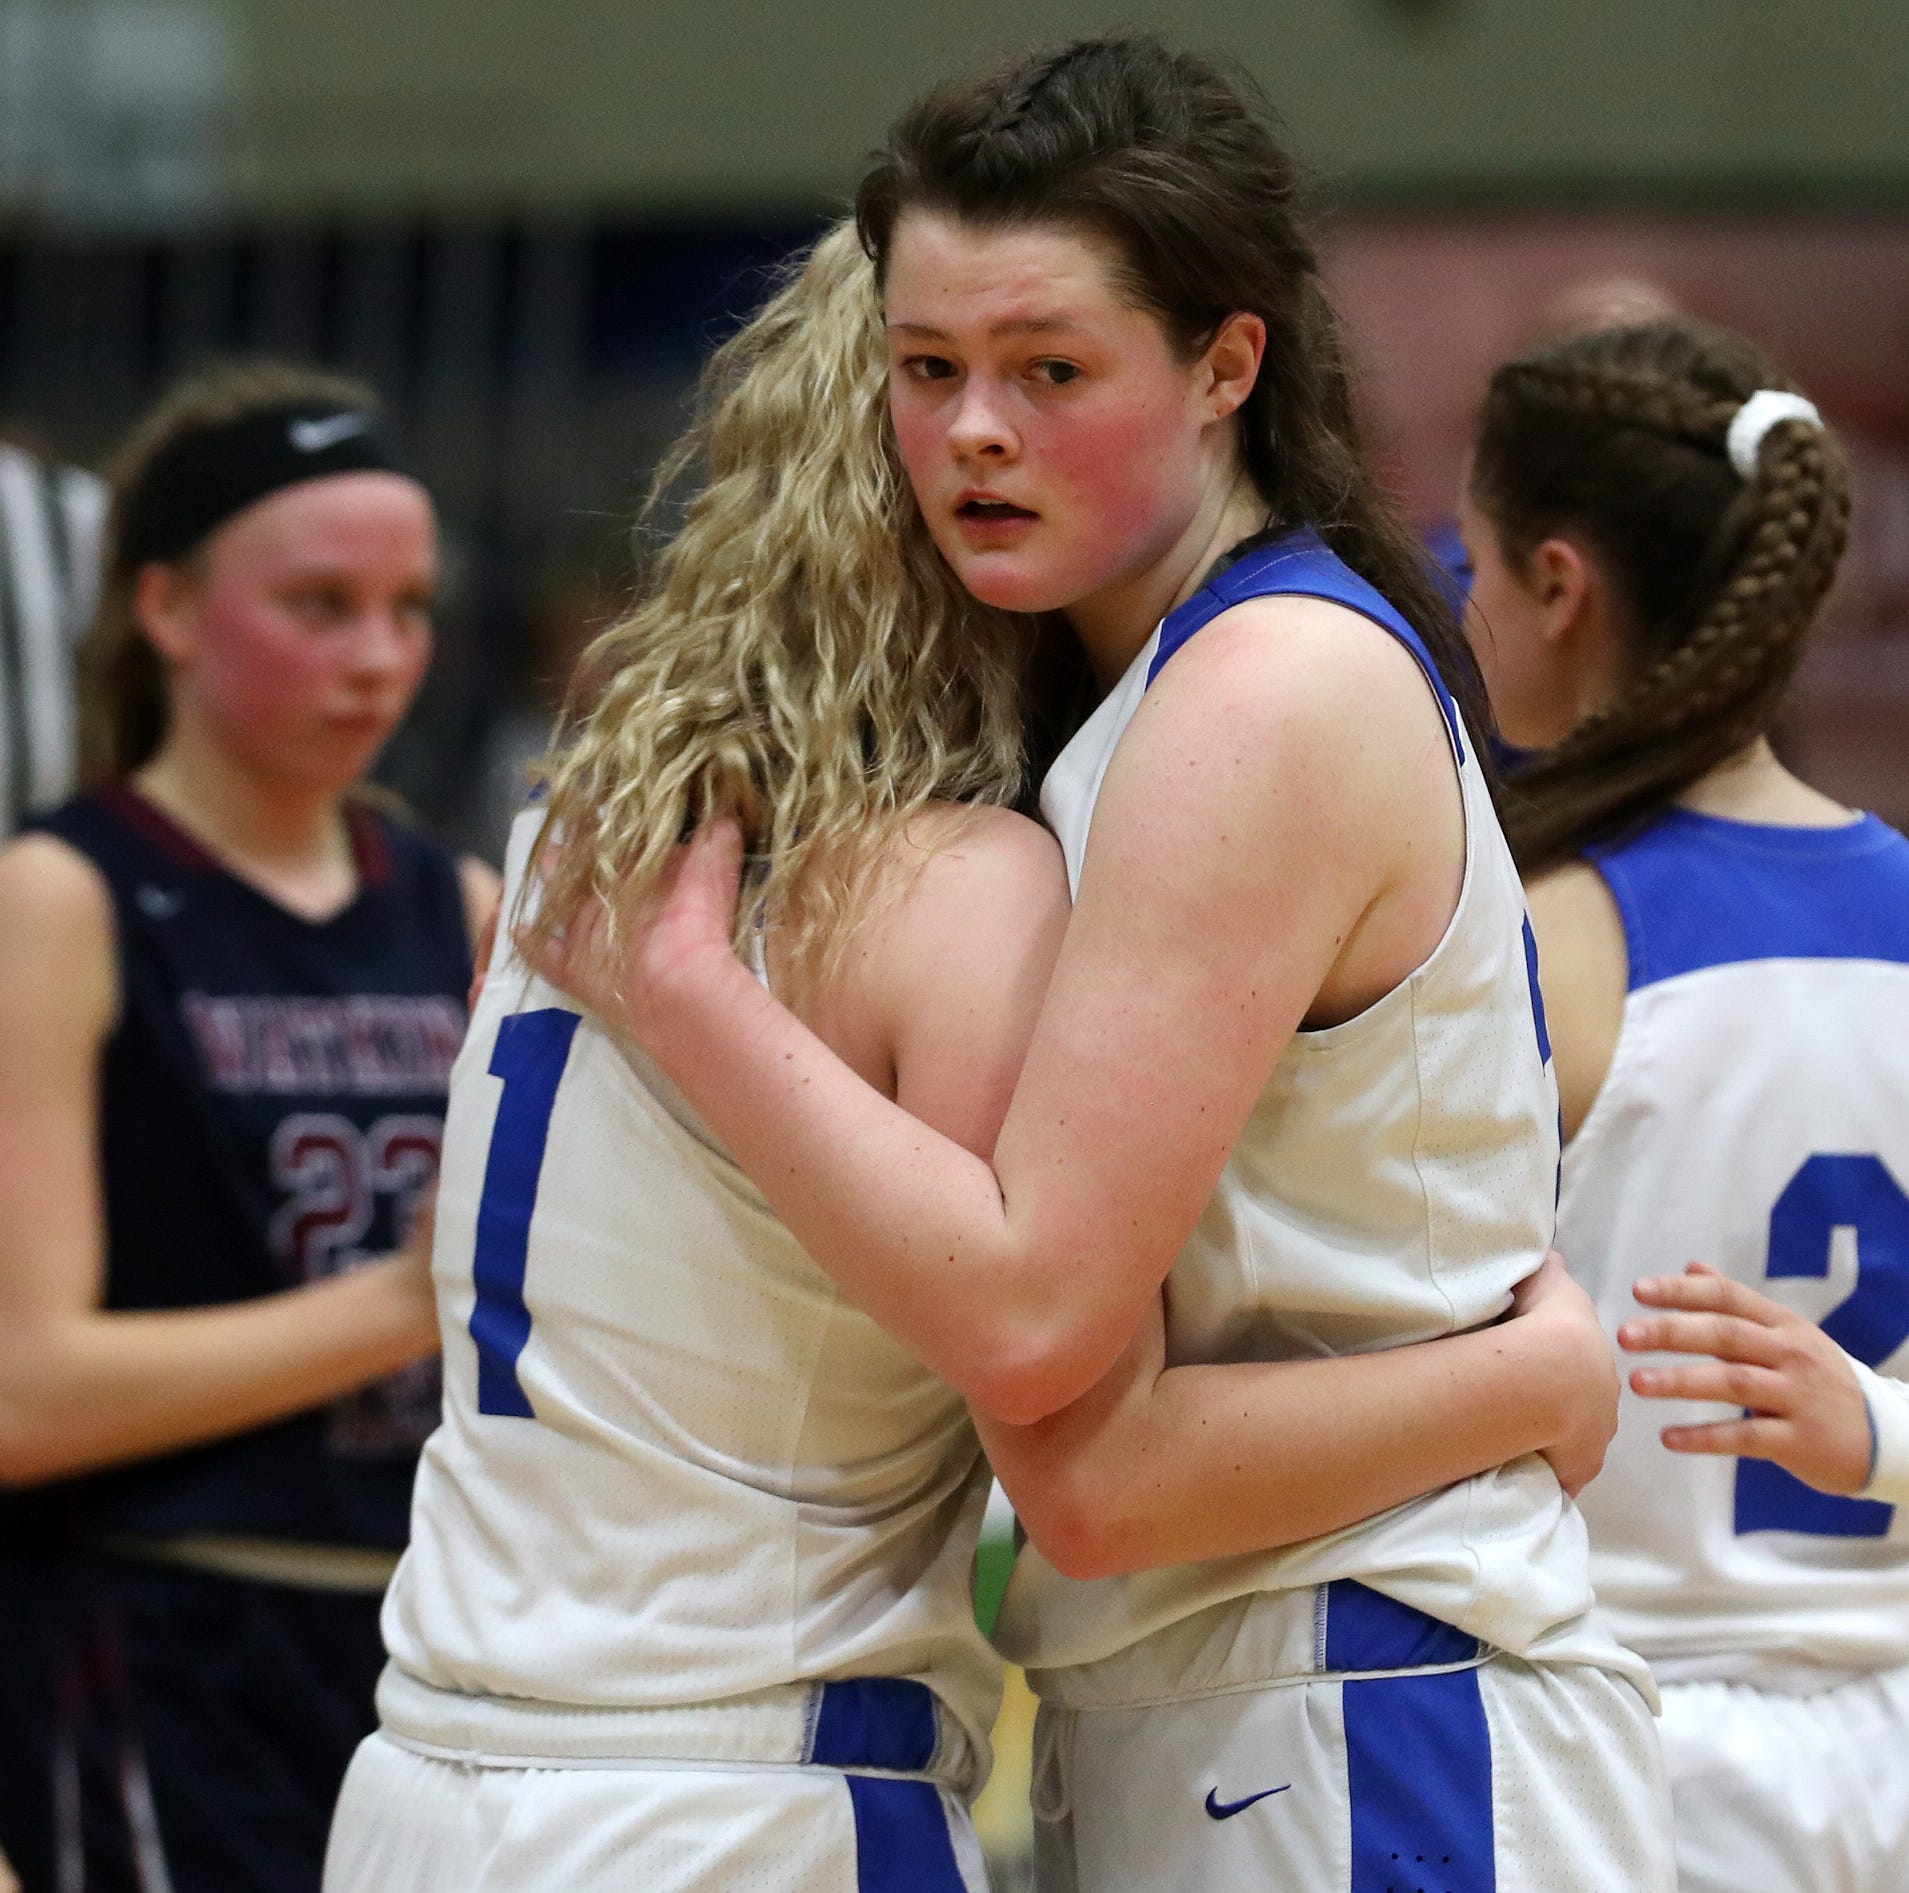 Girls basketball: Defending champs Millbrook dethroned by Watkins Glen in 'C' semifinal